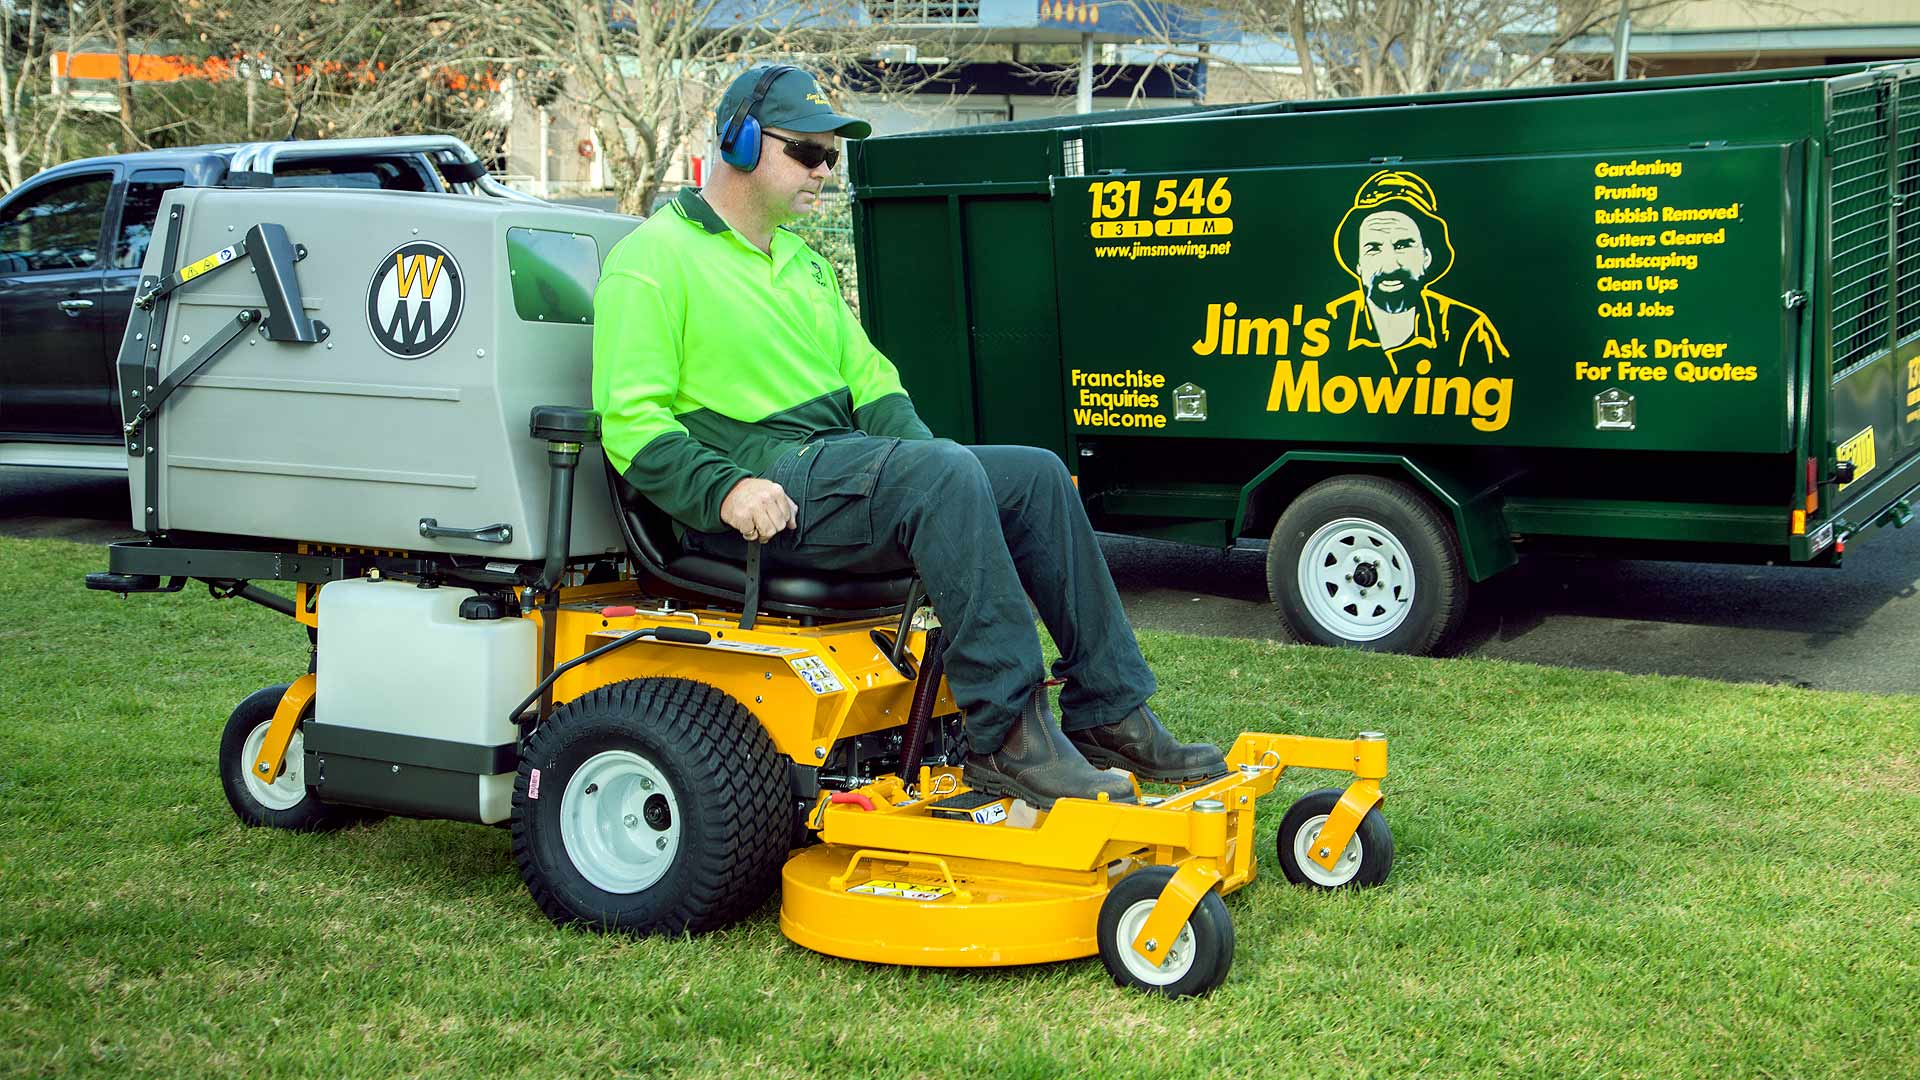 Jim S Lawn Mowing Call Us 131 546 Your Mowing Needs